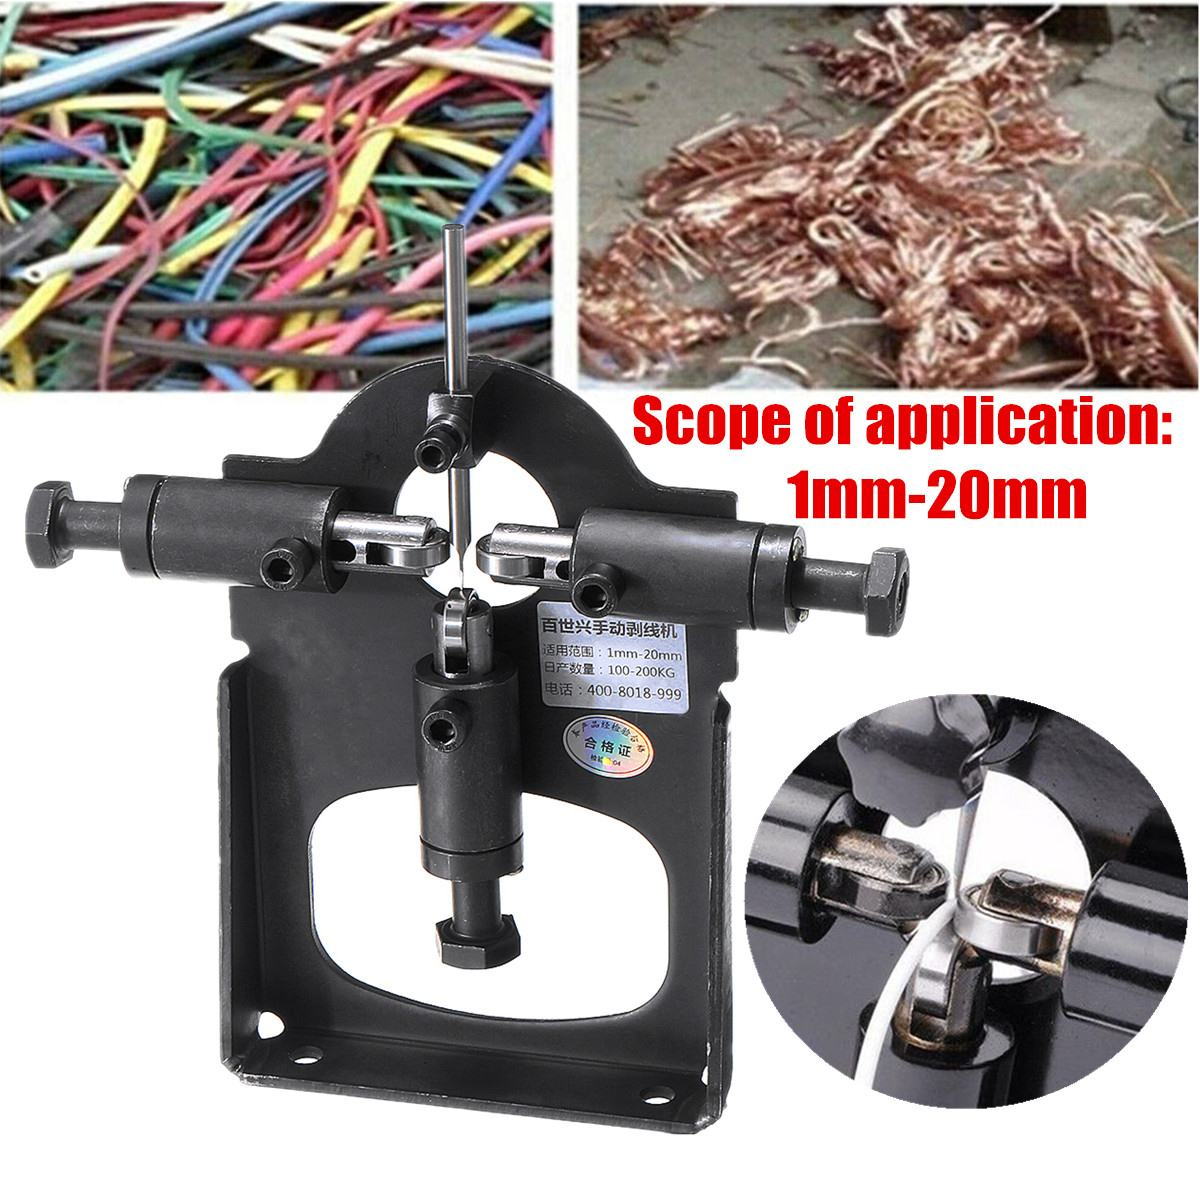 Metal Manual Wire Cable Stripping Machine Scrap Cable Stripper Copper Wire Stripper Recycle Tool